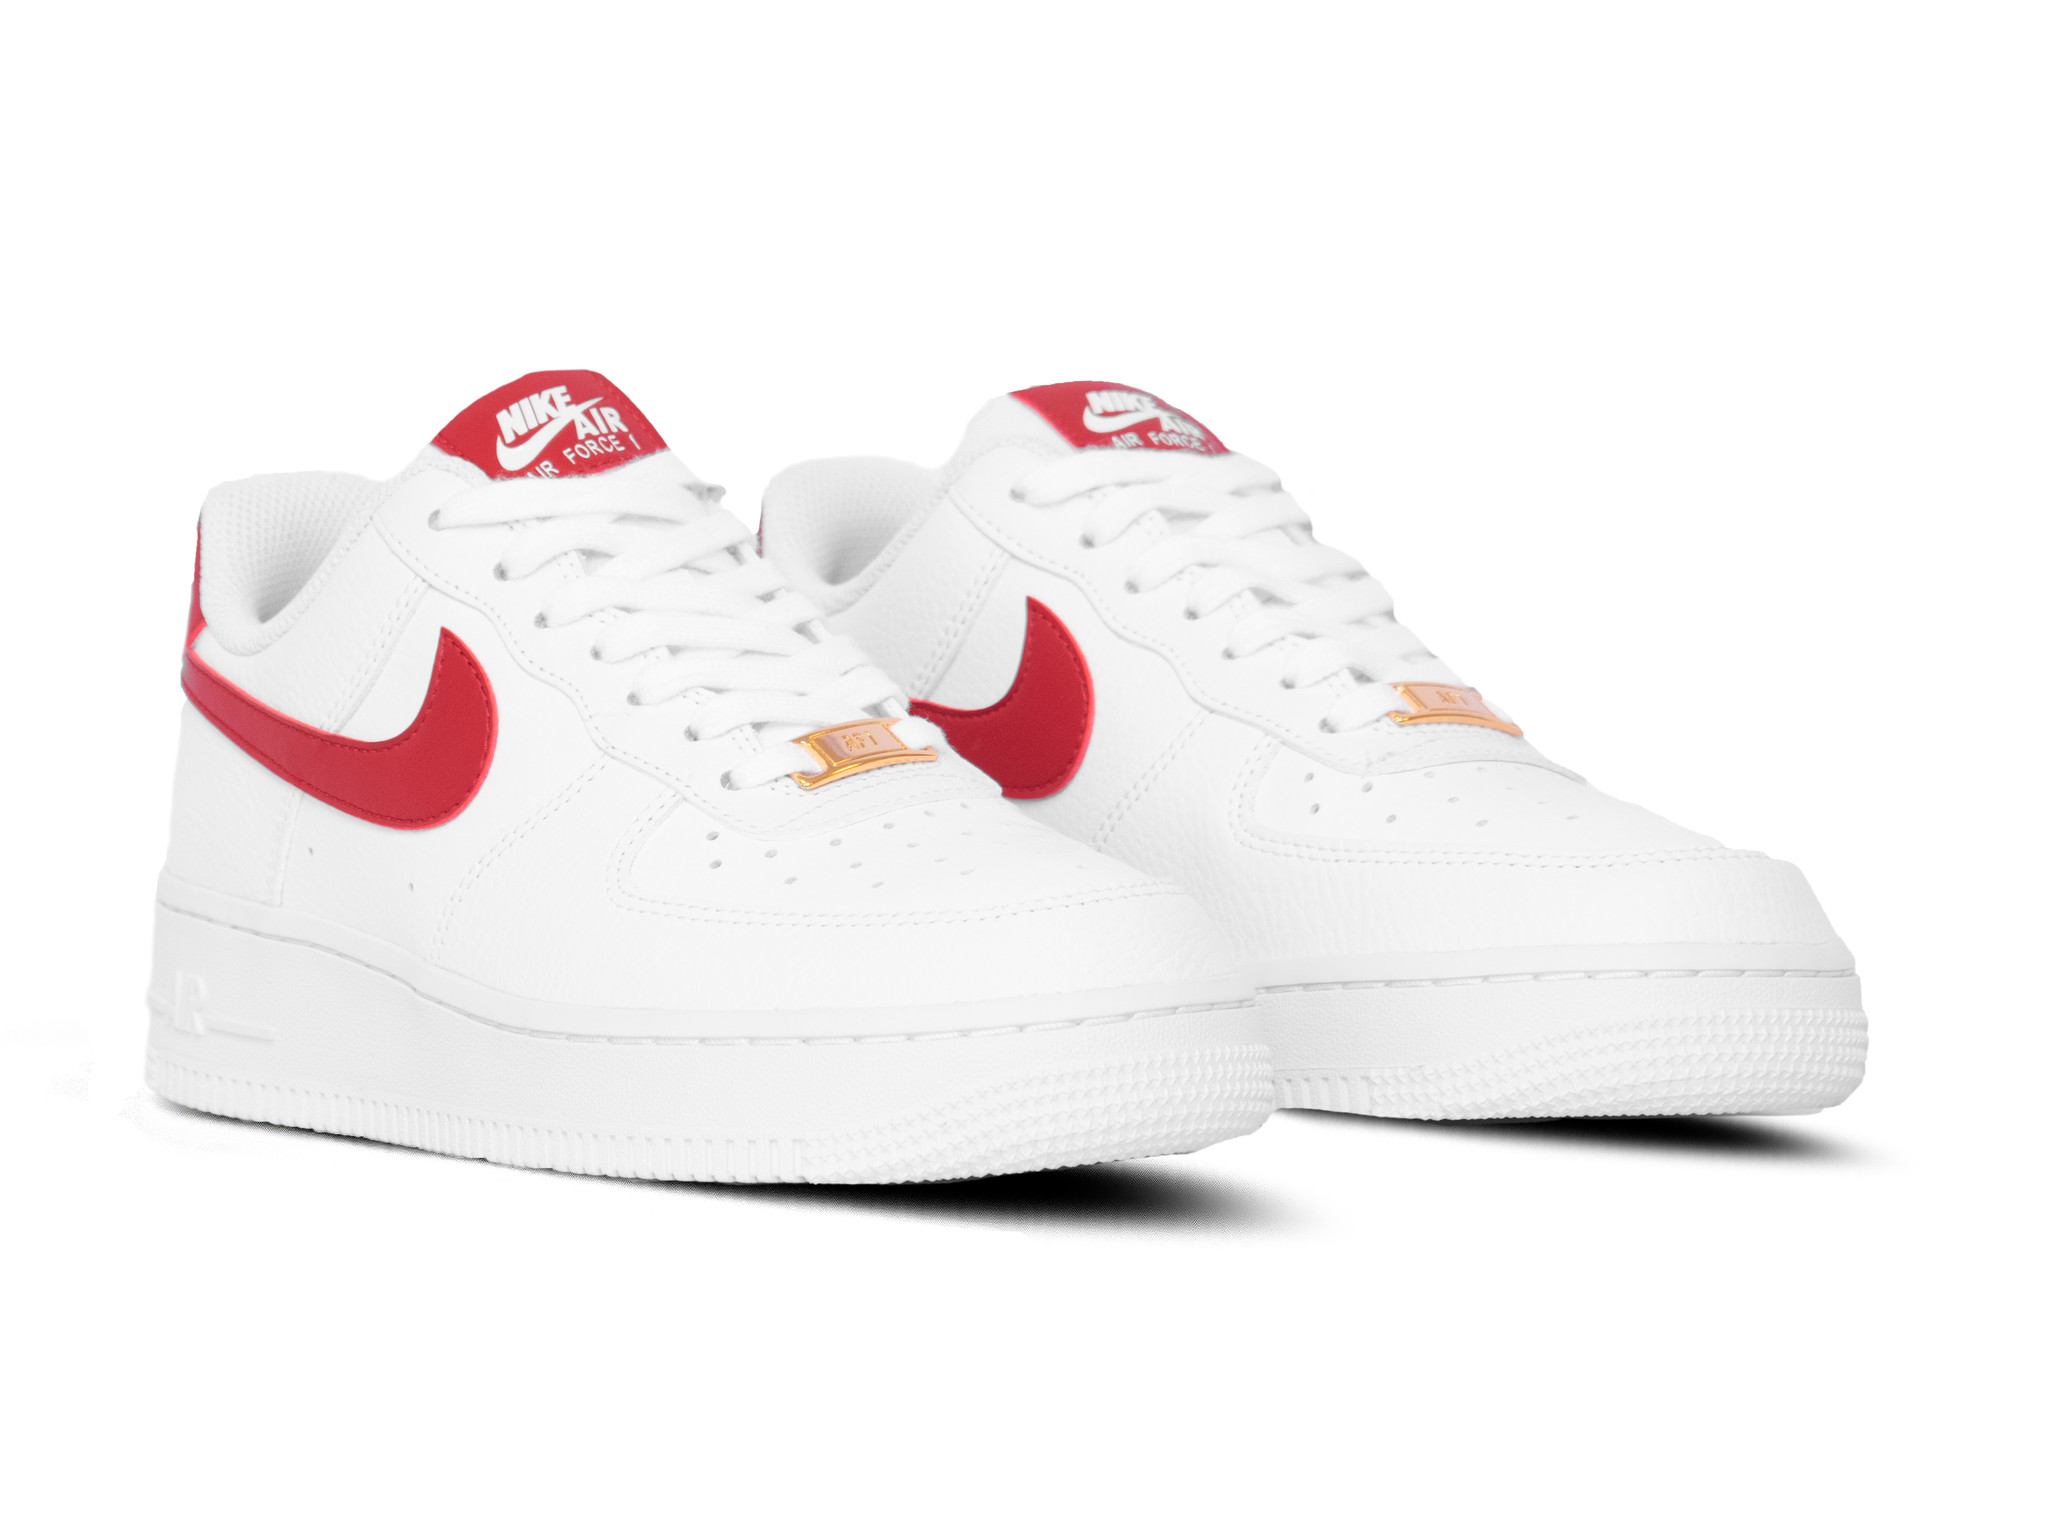 Nike WMNS Air Force 1 '07 White Gym Red Metallic Gold